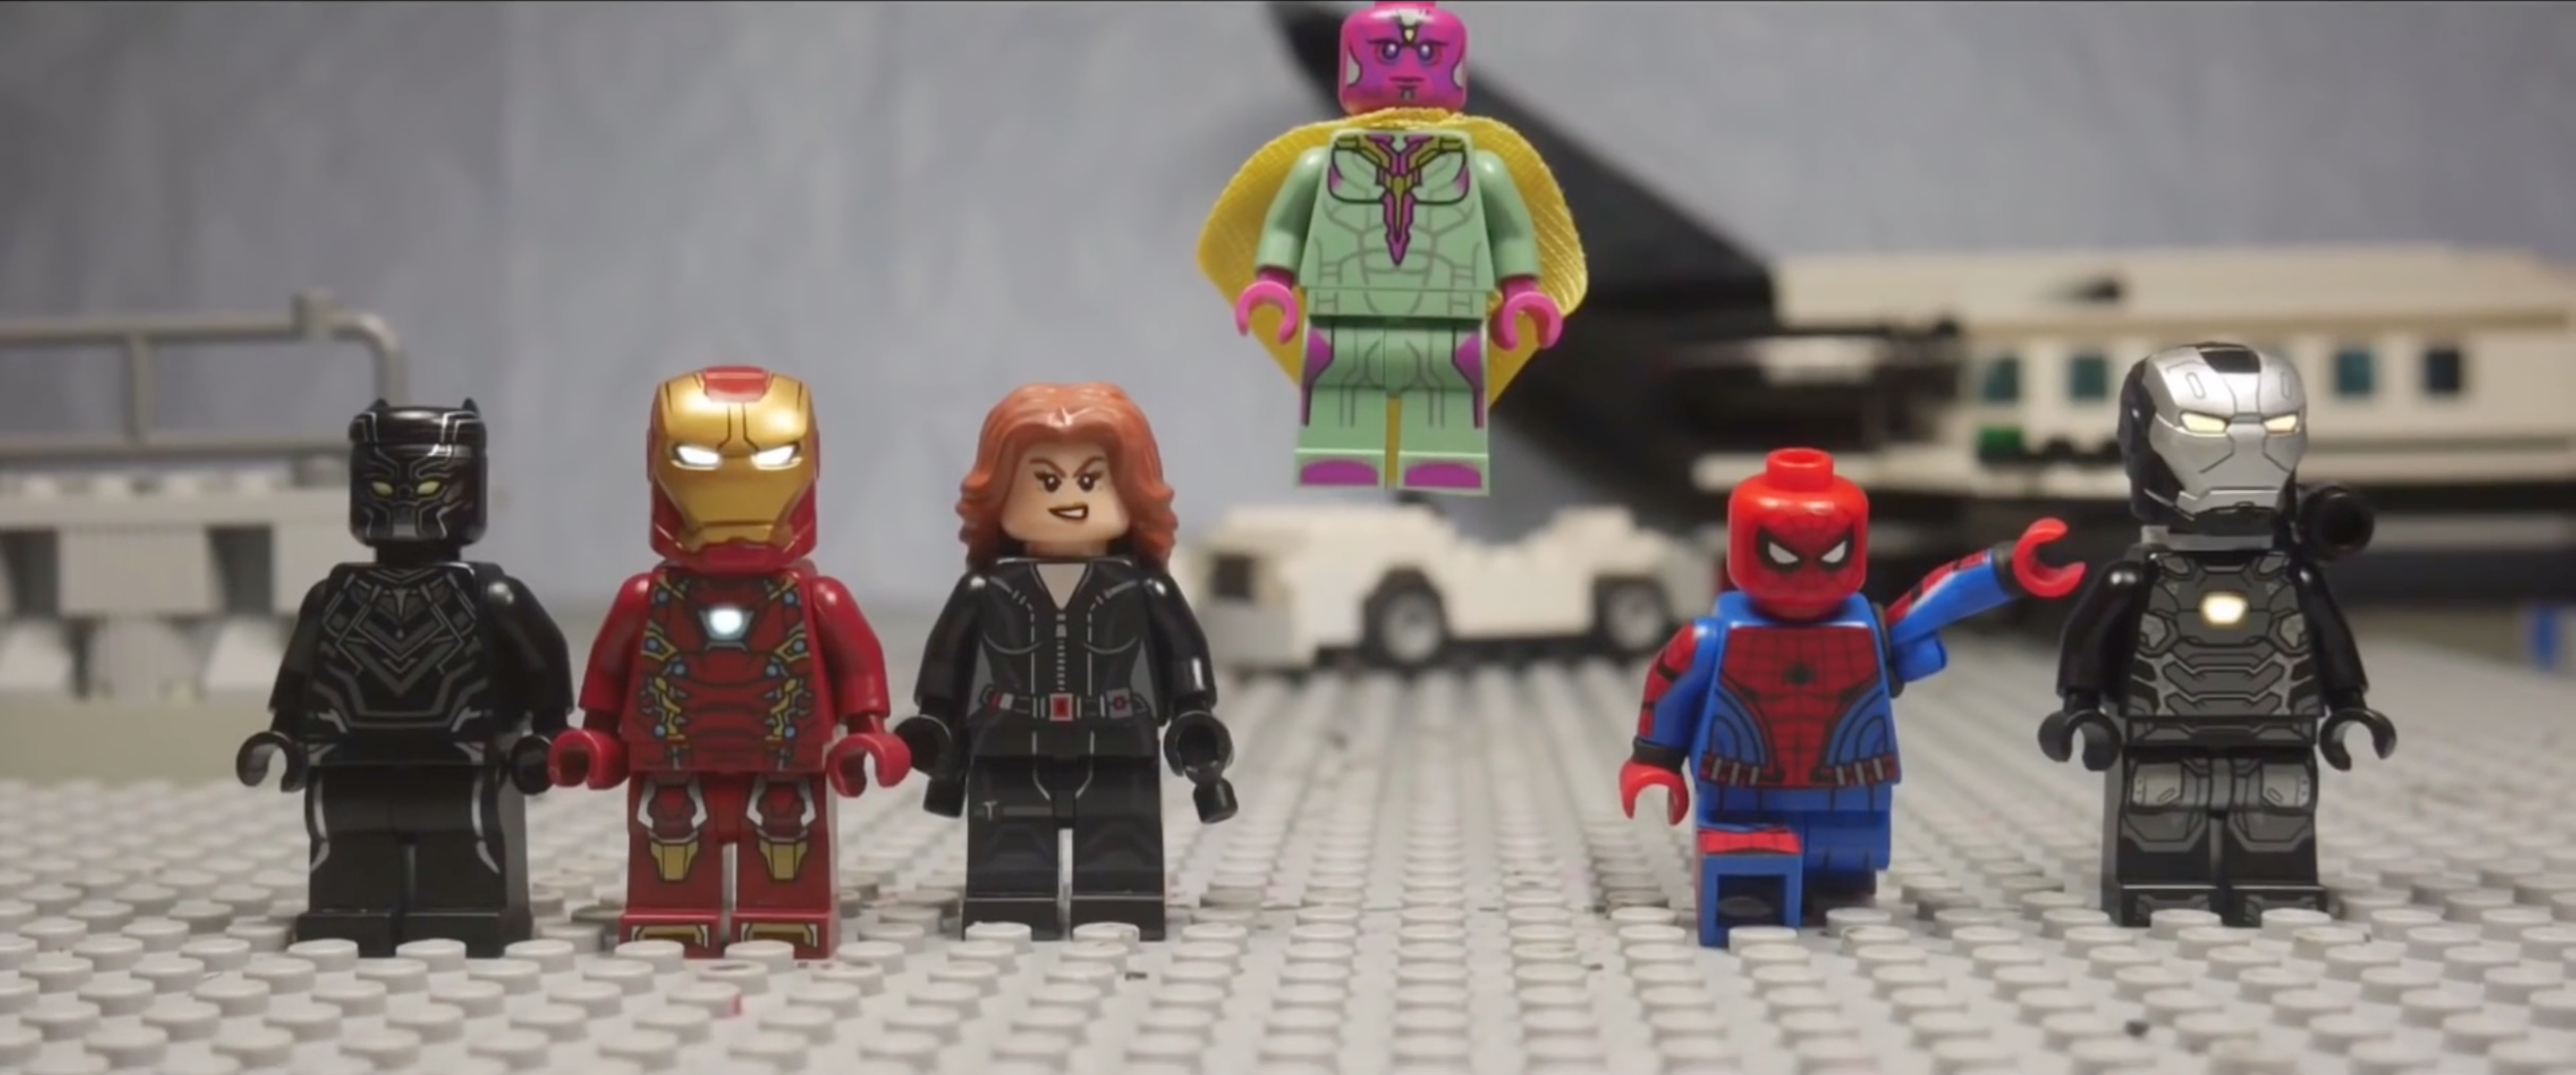 WATCH: 'Civil War' Airport Scene Recreated in LEGO